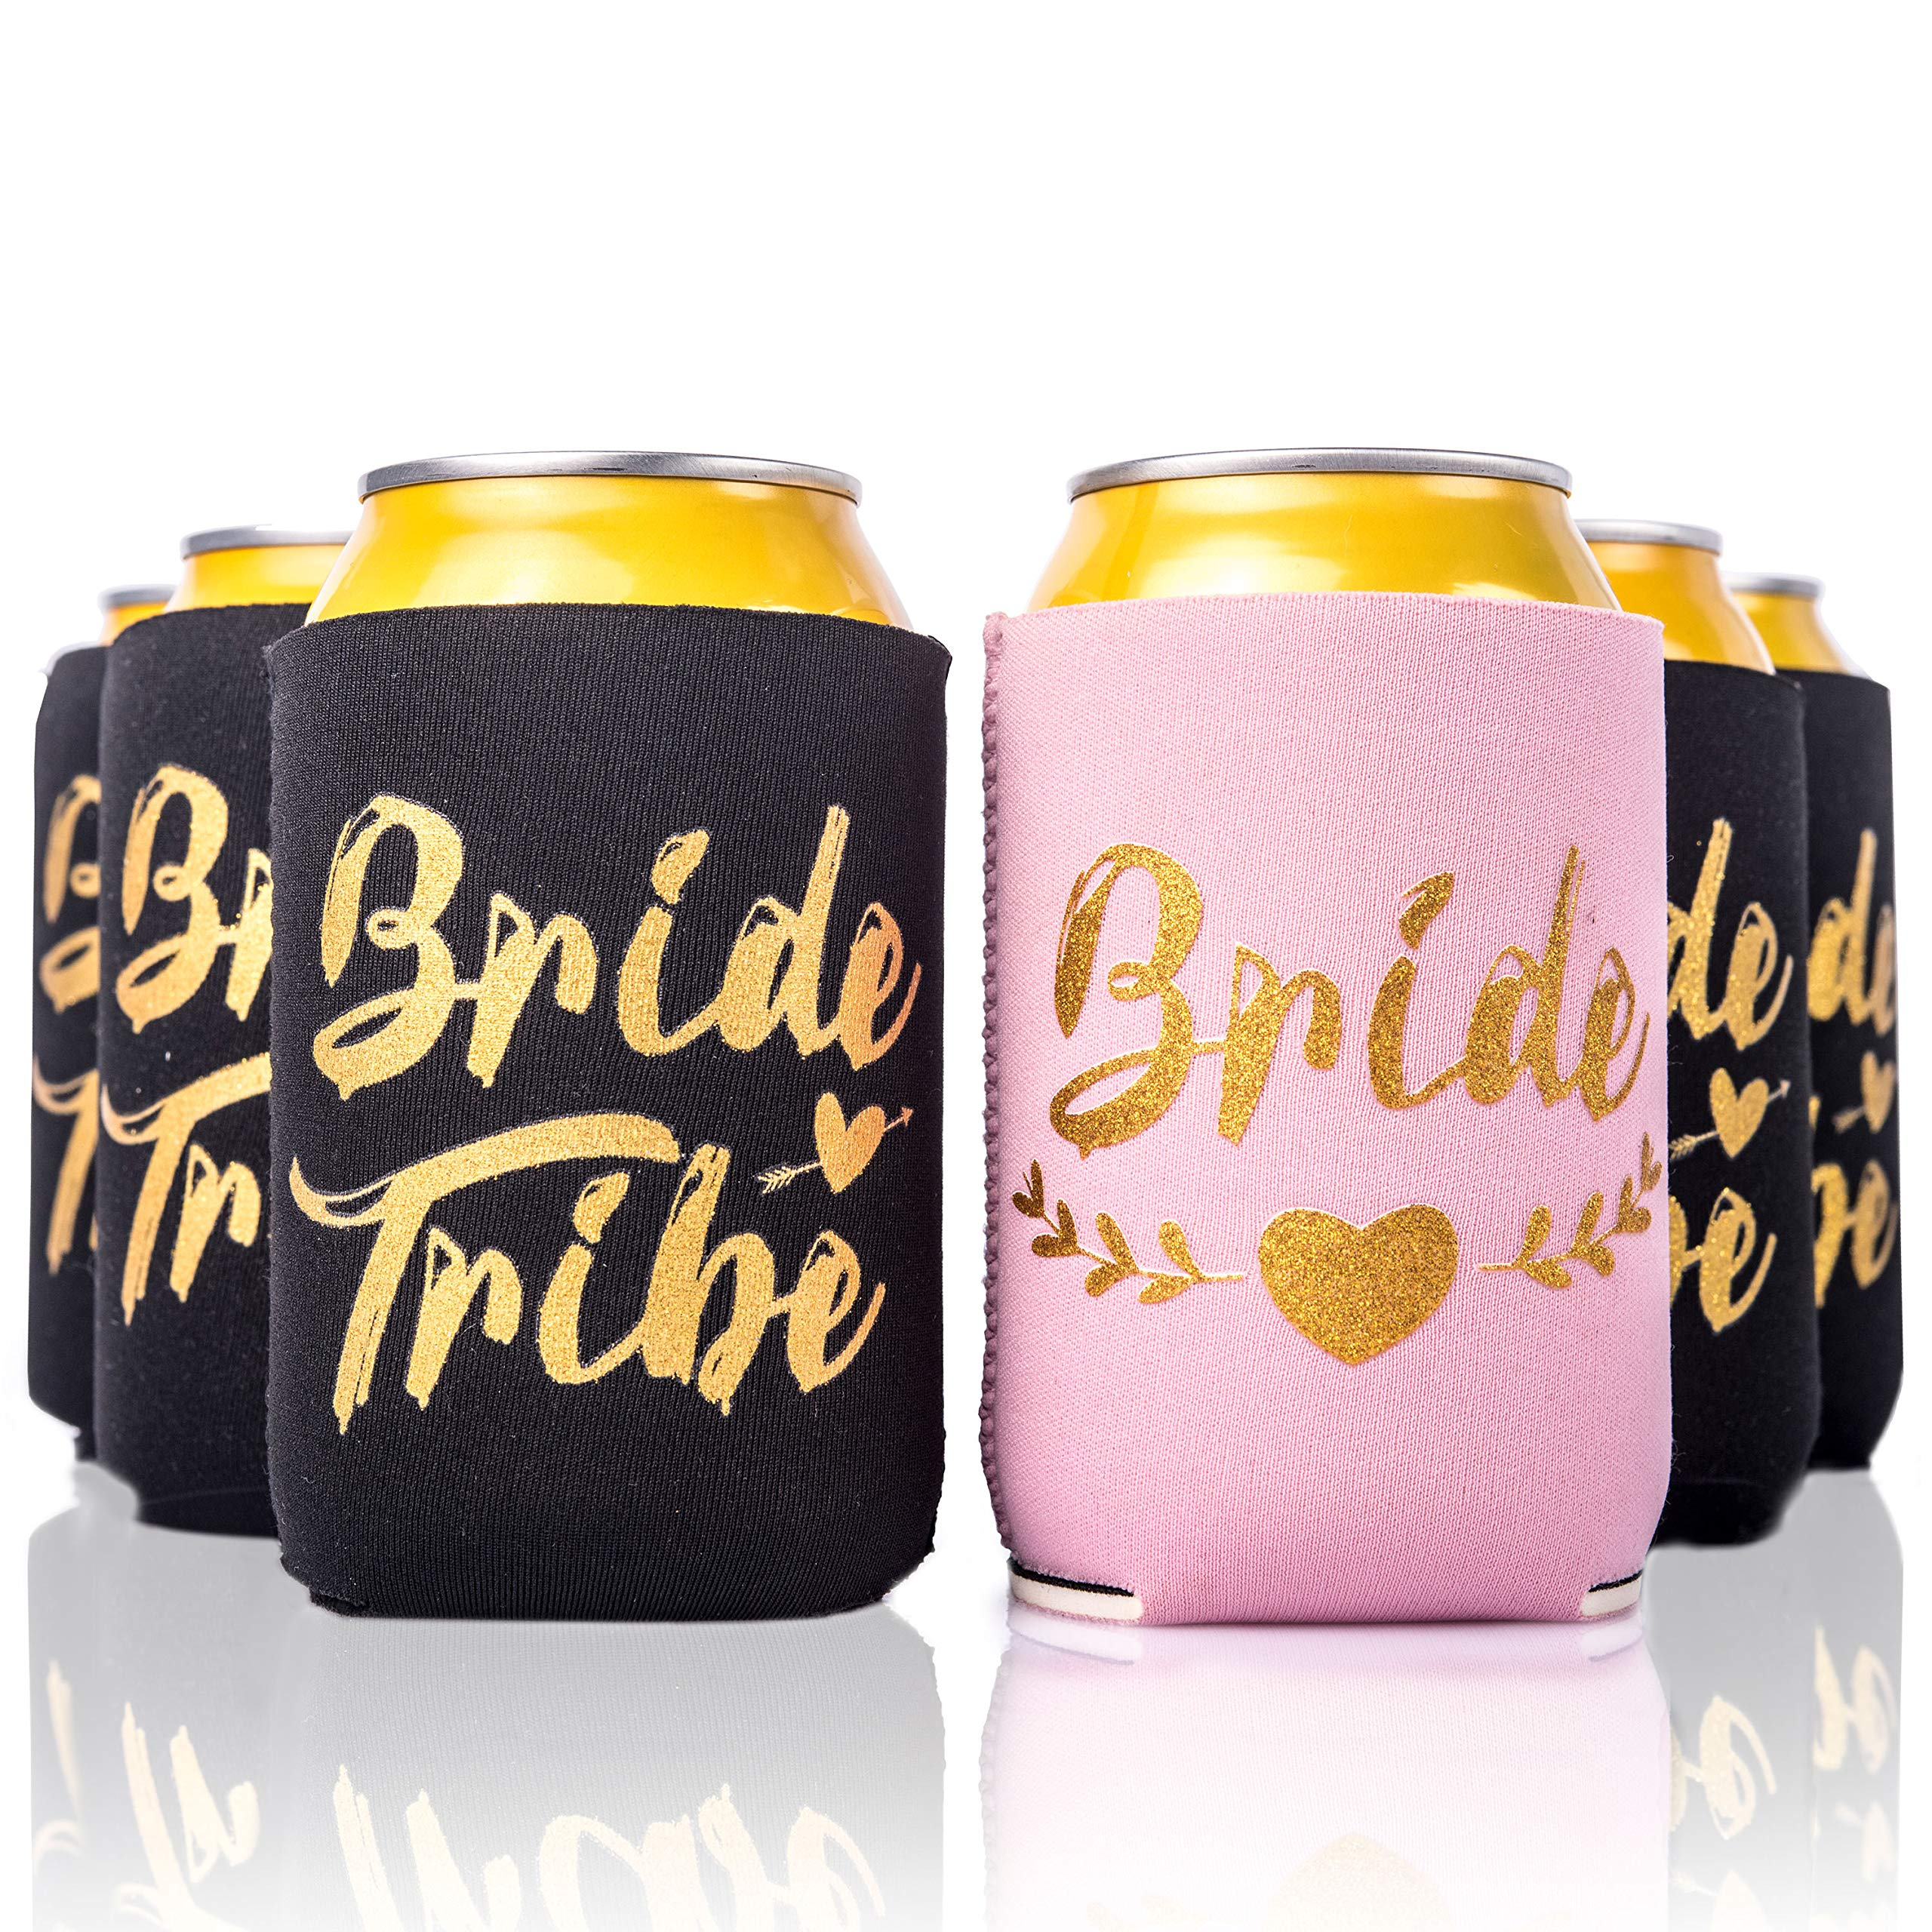 Bachelorette Party 11pc Drink Coozies - BRIDE TRIBE & BRIDE - 10 Black & 1 Pink Blushing Bride Color Bachelorette Party Coozie, Bridal Showers, Party Favor Beverage Insulators by Almost Bride by Almost Bride